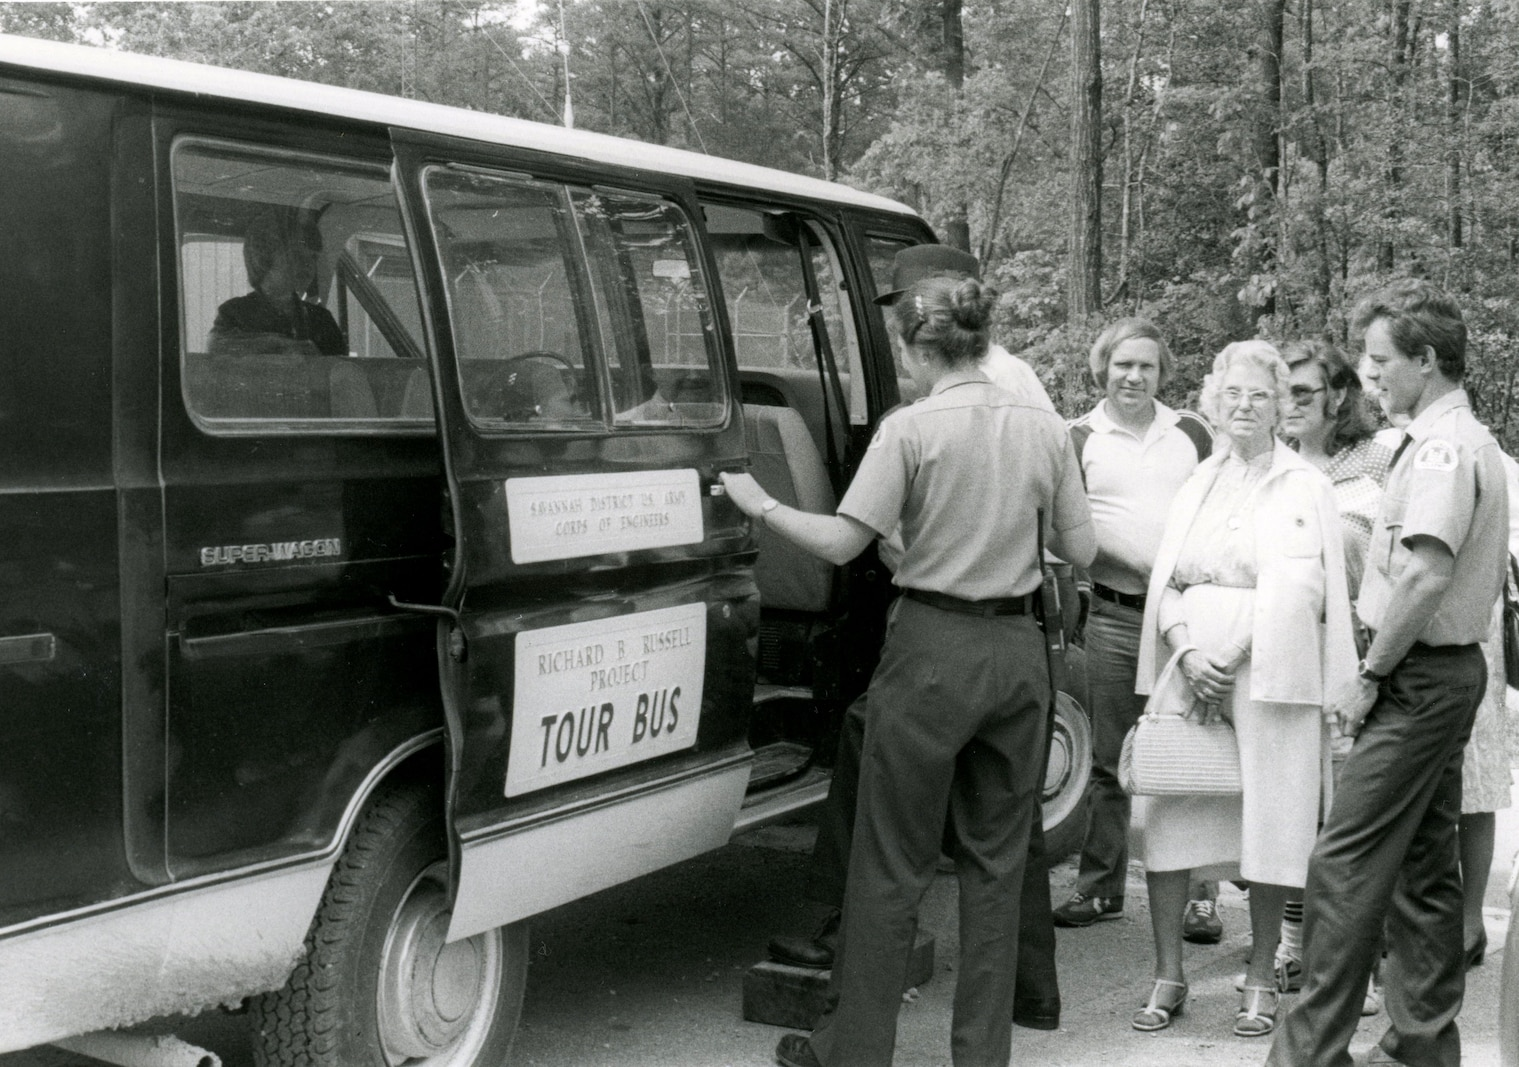 Two park rangers assist s small group of visitors into a van marked with a Tour Bus decal